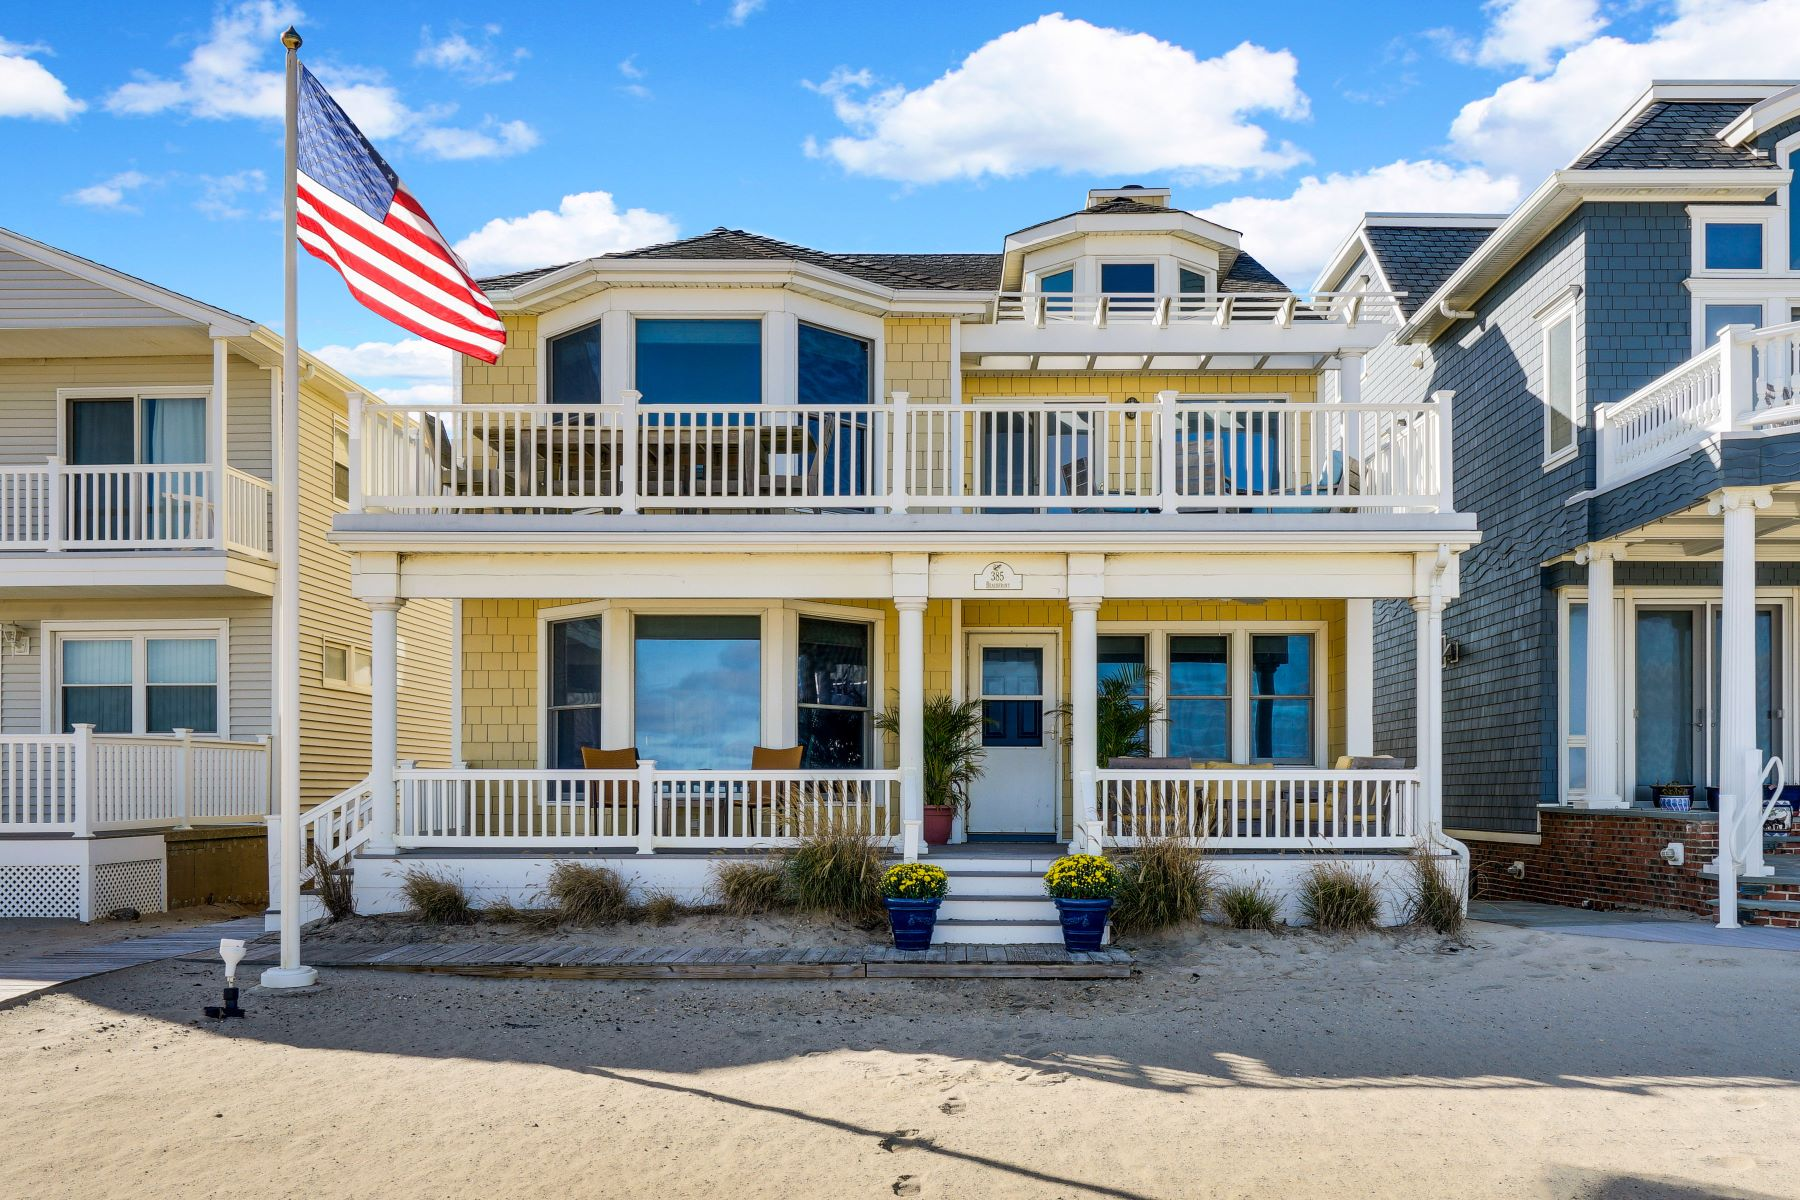 Single Family Homes for Sale at Manasquan Beachfront Compound 385 Beachfront, Manasquan, New Jersey 08736 United States